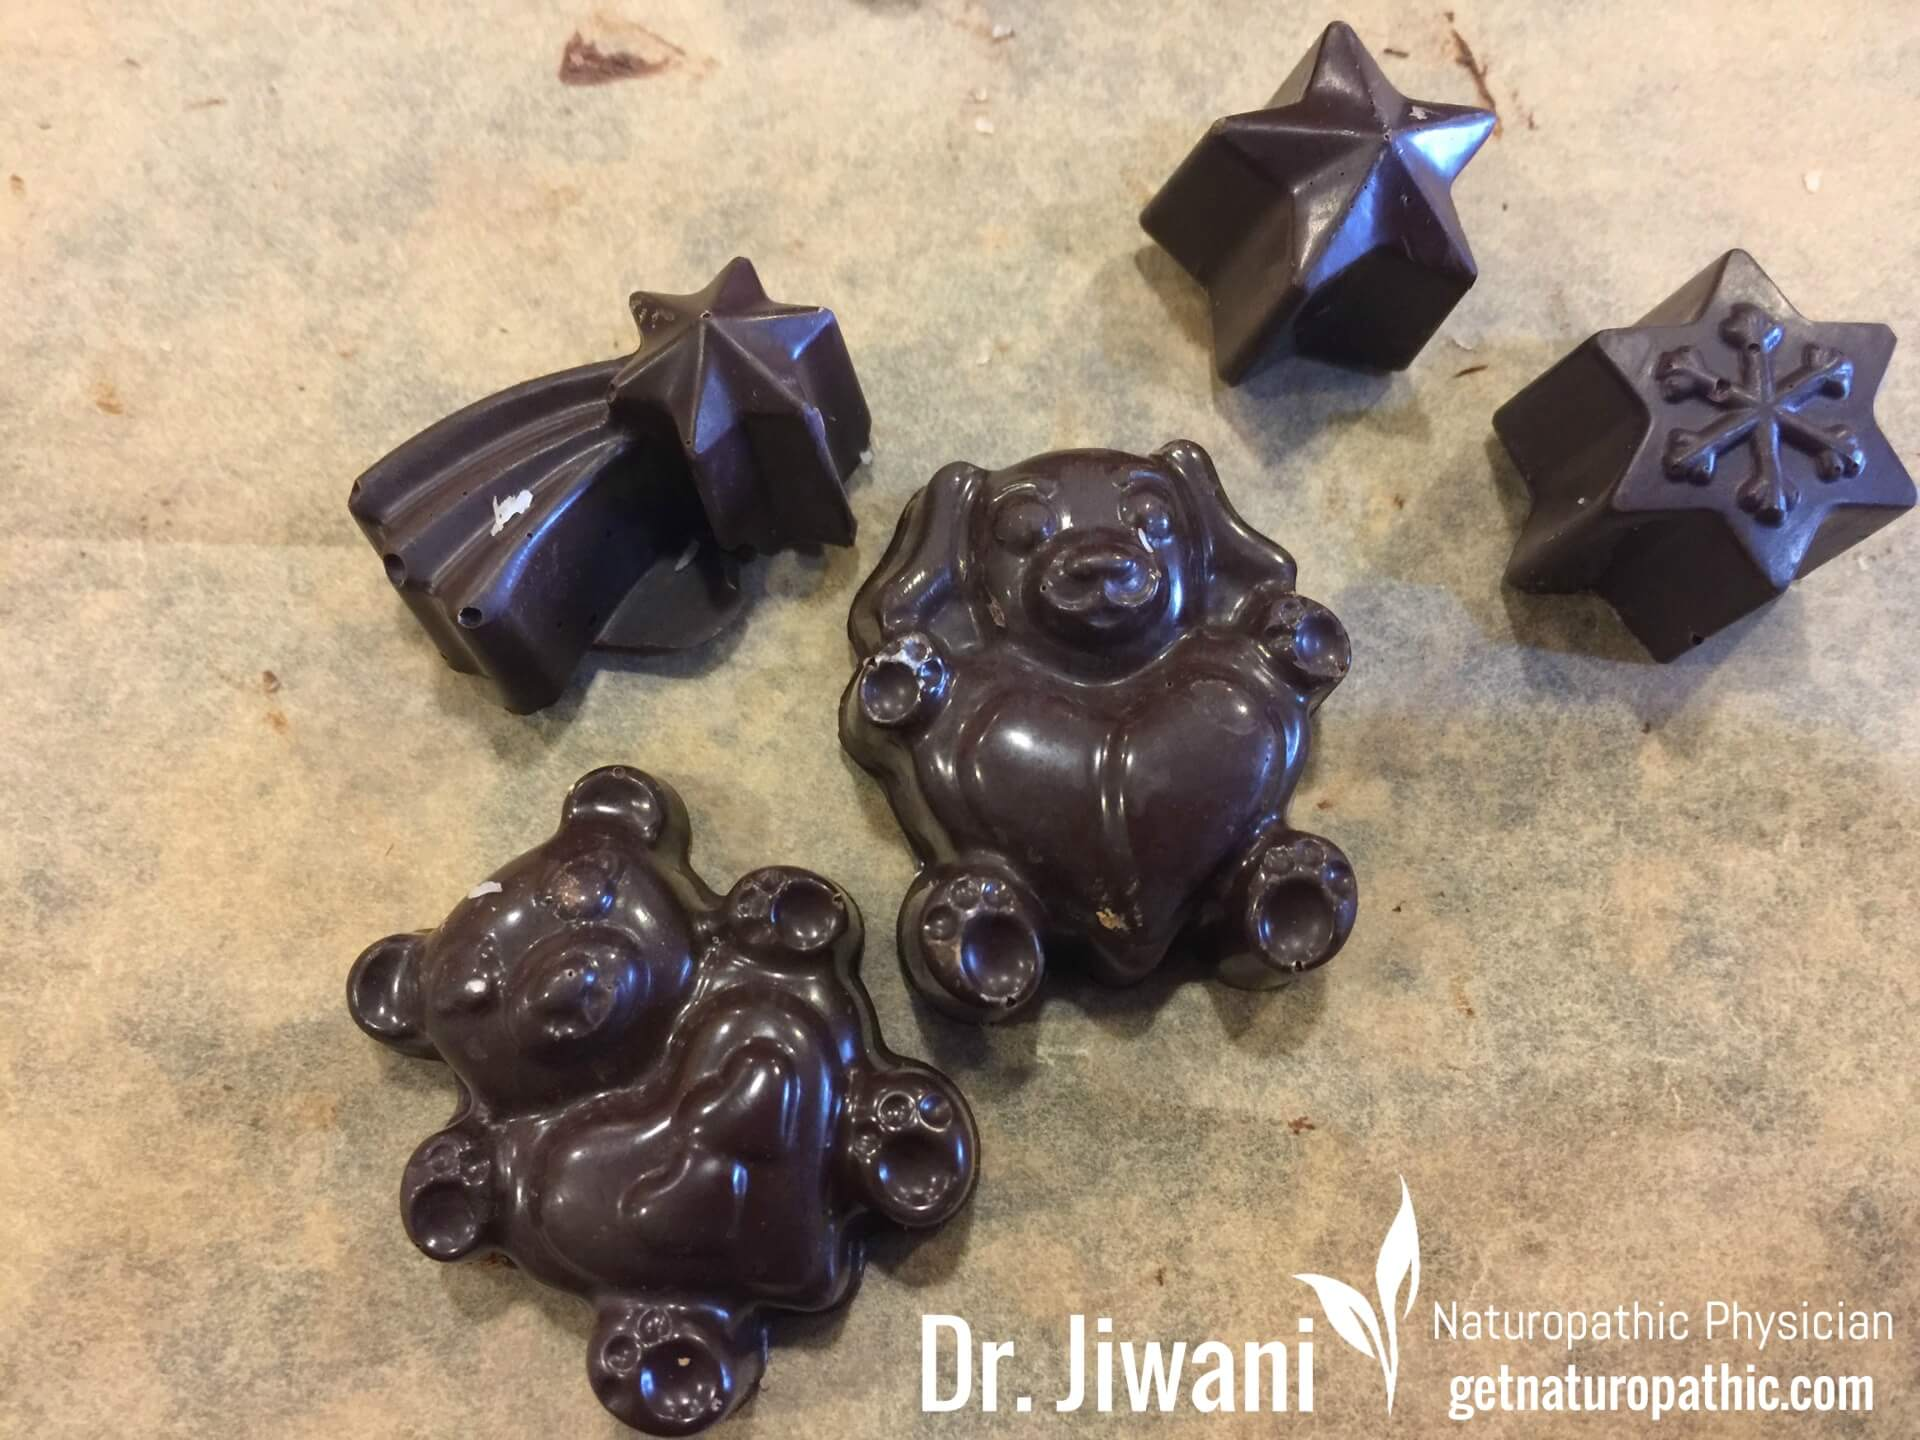 Dr. Jiwani's Dark Chocolate Low Carb Delights: Recipe for Homemade Dark Chocolate for a sweet guilt-free escape without the chemicals & allergens while Sugar-Free, Dairy-Free, Soy-Free & Gluten-Free